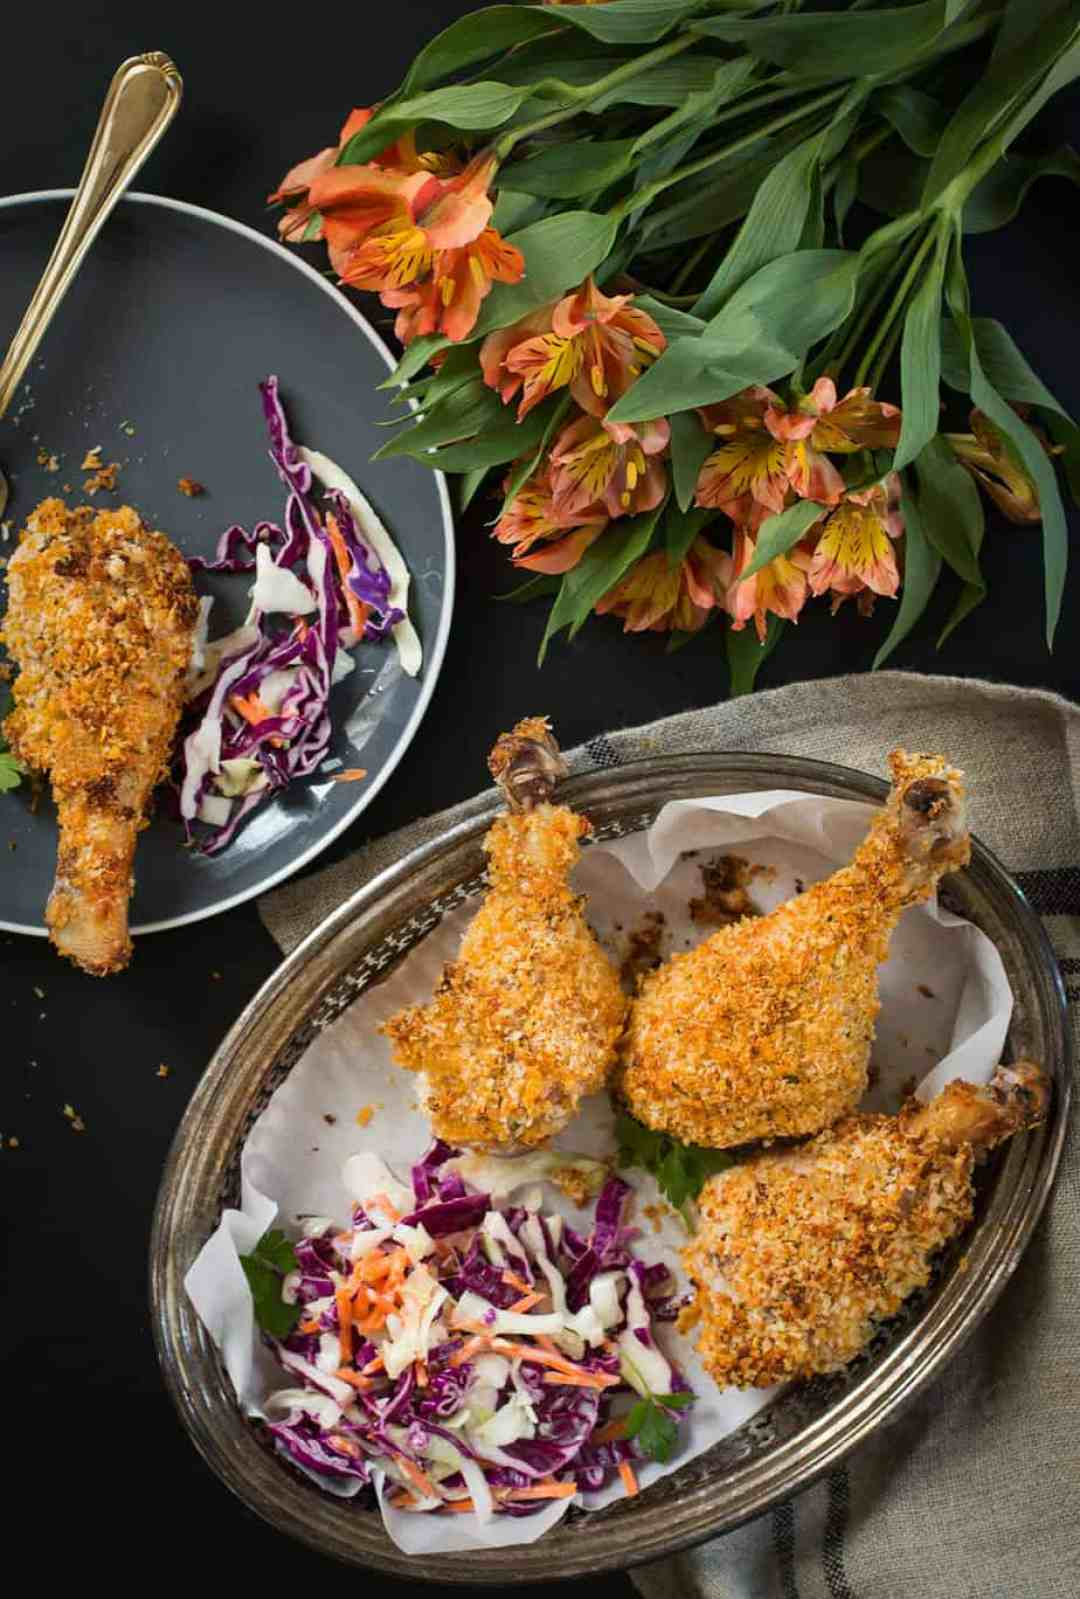 Crispy oven baked chicken legs with buttermilk. The best oven fried chicken, non-greasy and you will achieve the same crispy golden texture you get from frying.